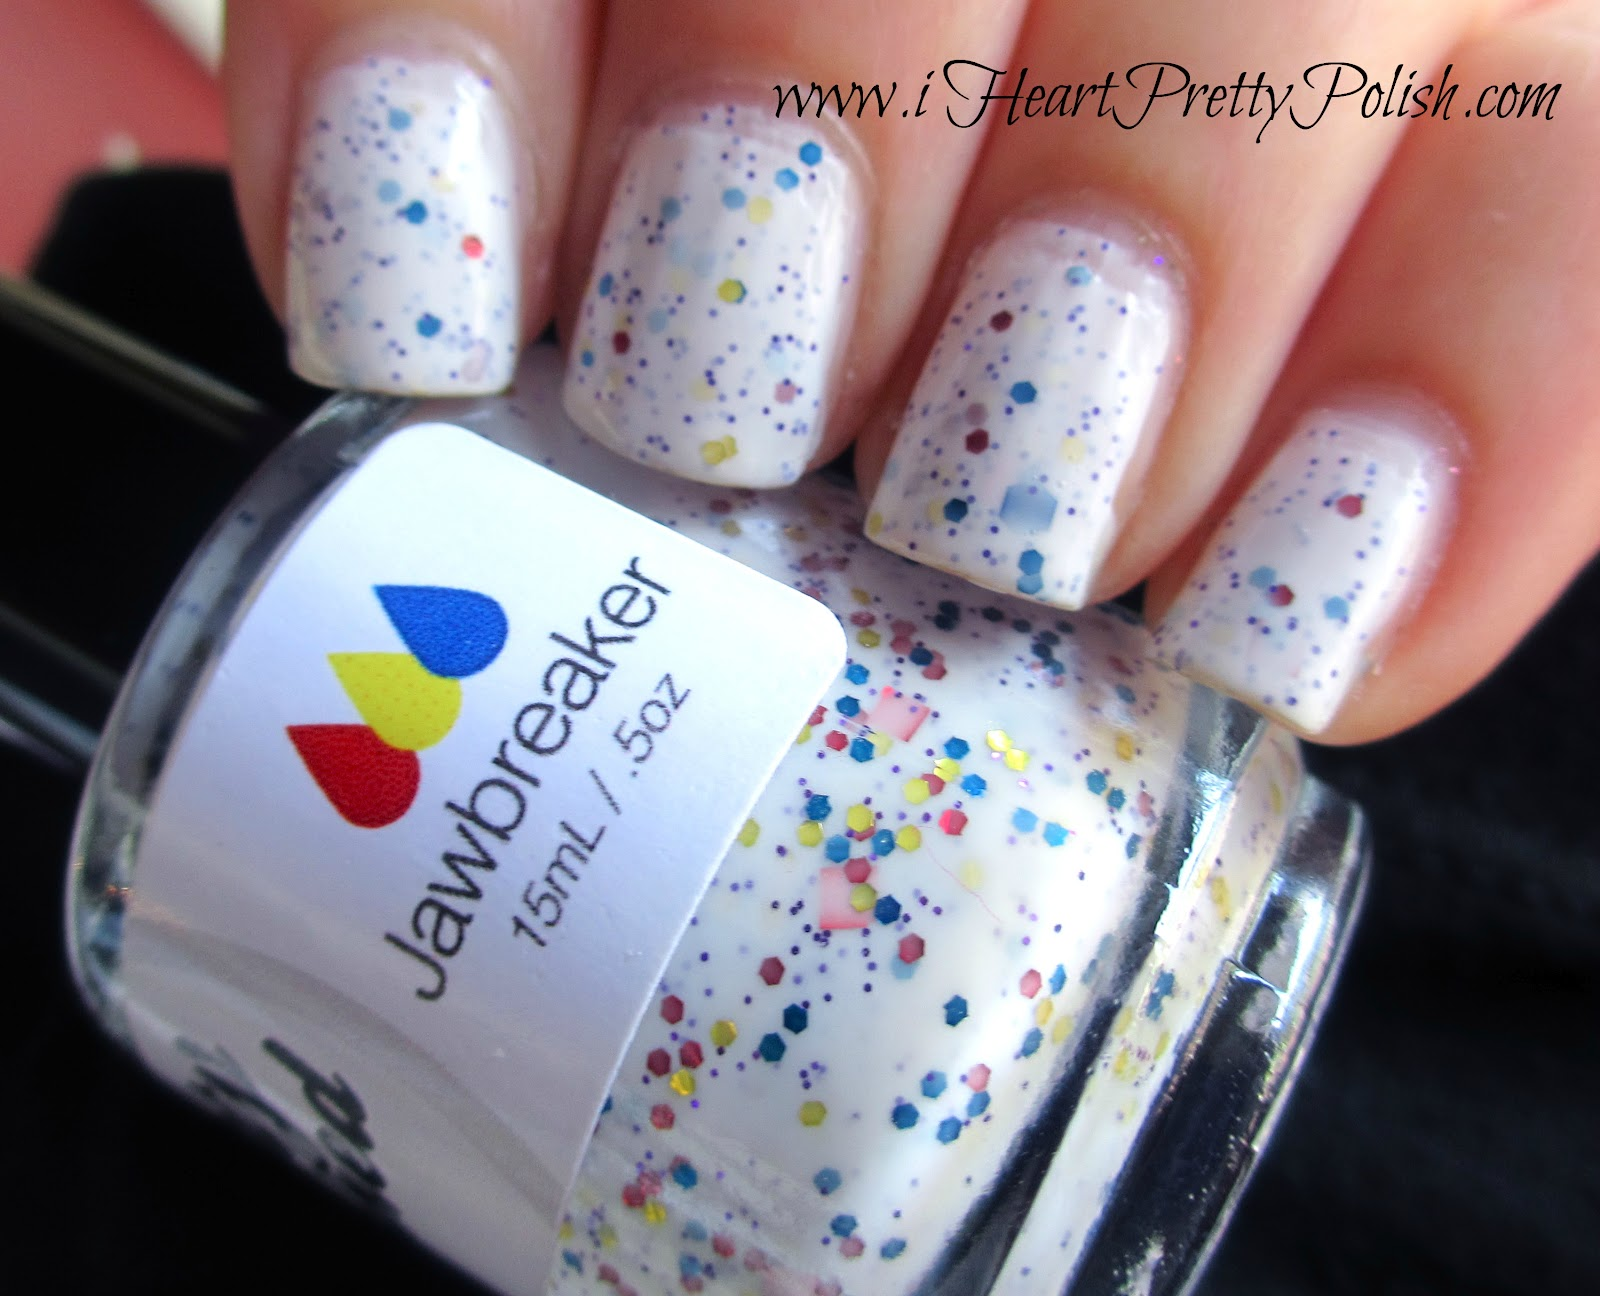 iHeartPrettyPolish: Pretty & Polished Jawbreaker!